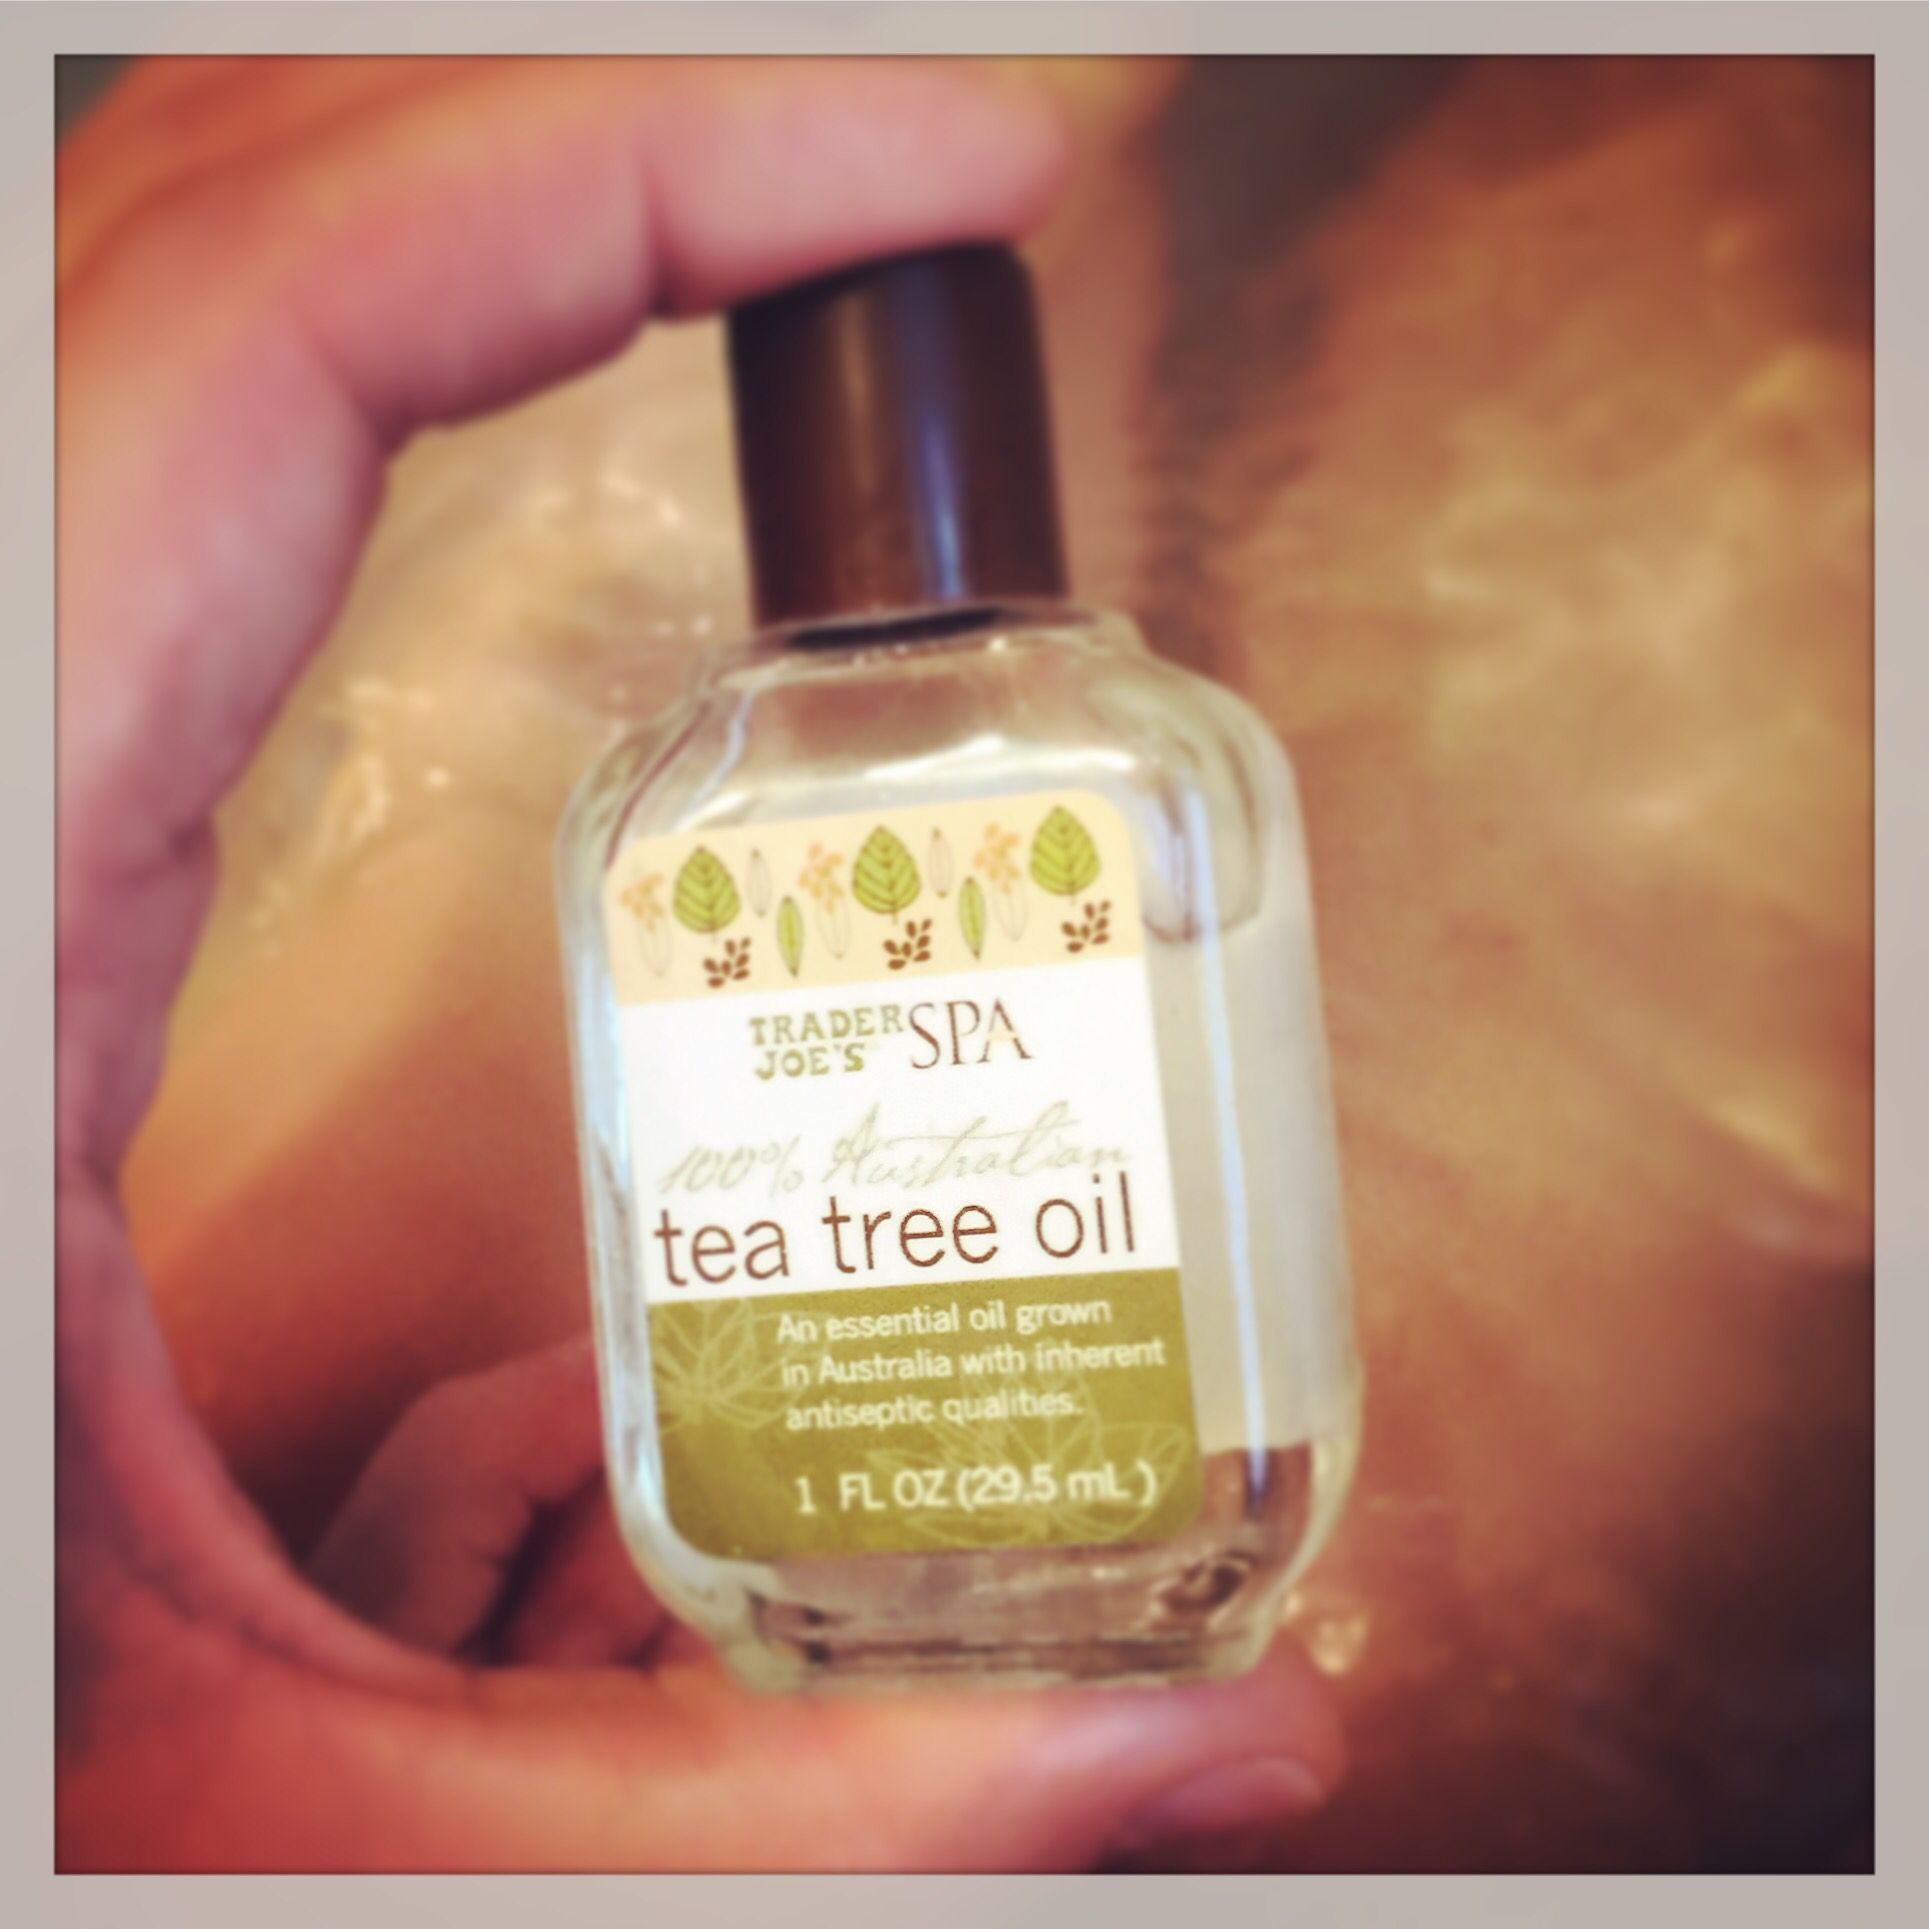 Tea Tree oil has many benefits for the body and skin